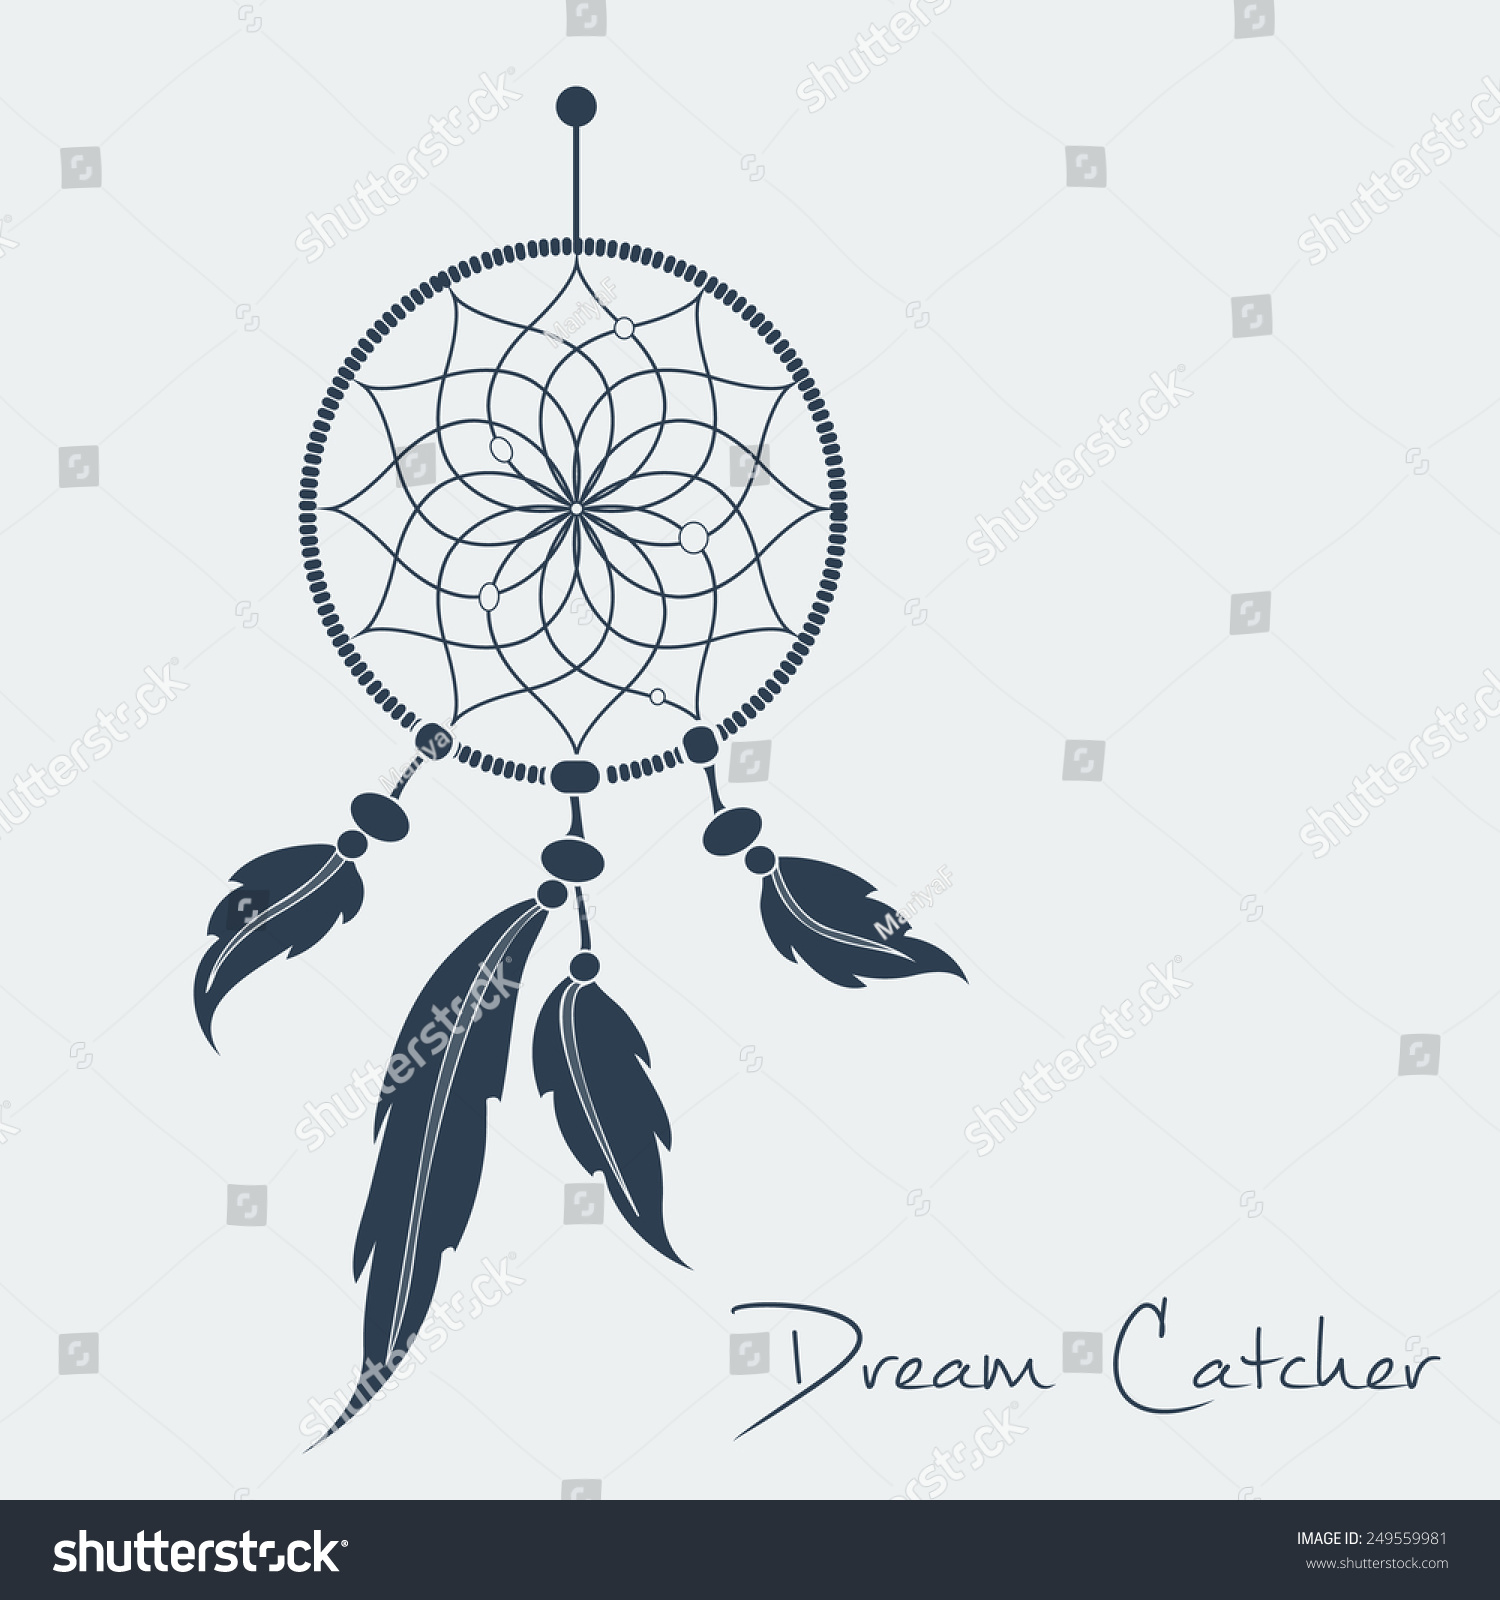 - Vector Dream Catcher Black Vector Format Stock Vector (Royalty